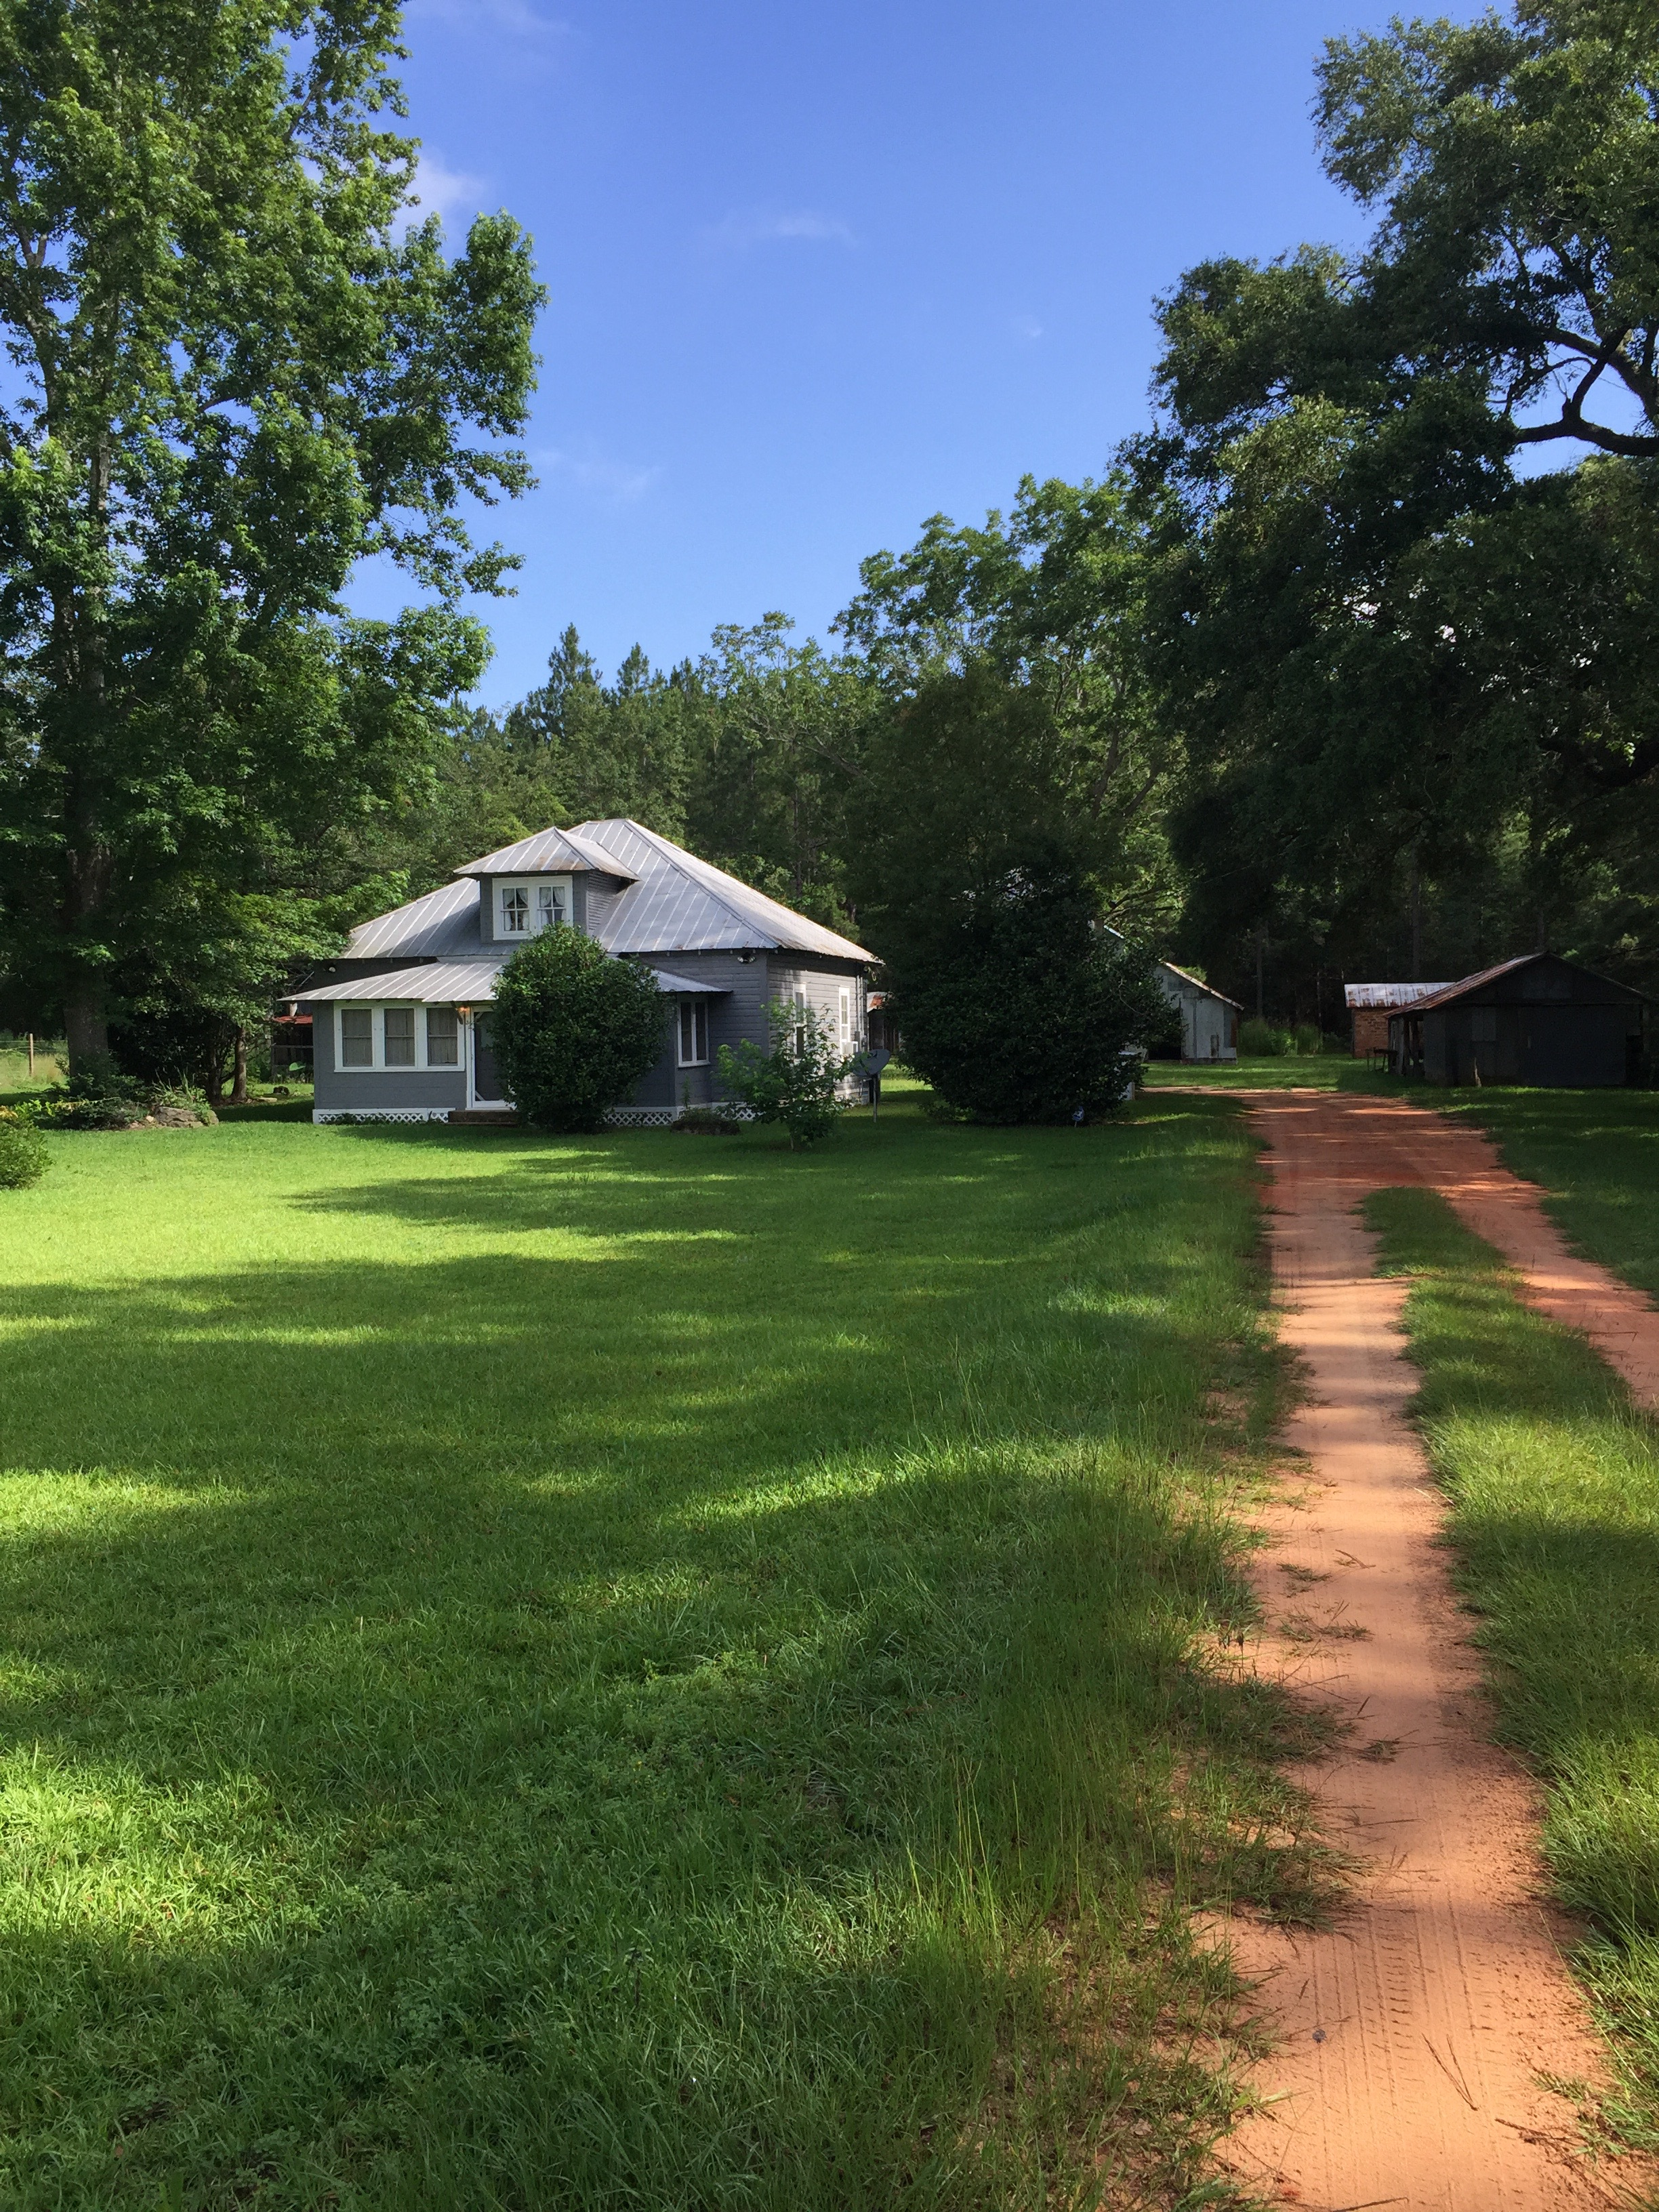 The Family Farmhouse is located in Silverhill, AL and can be rented through these three websites.